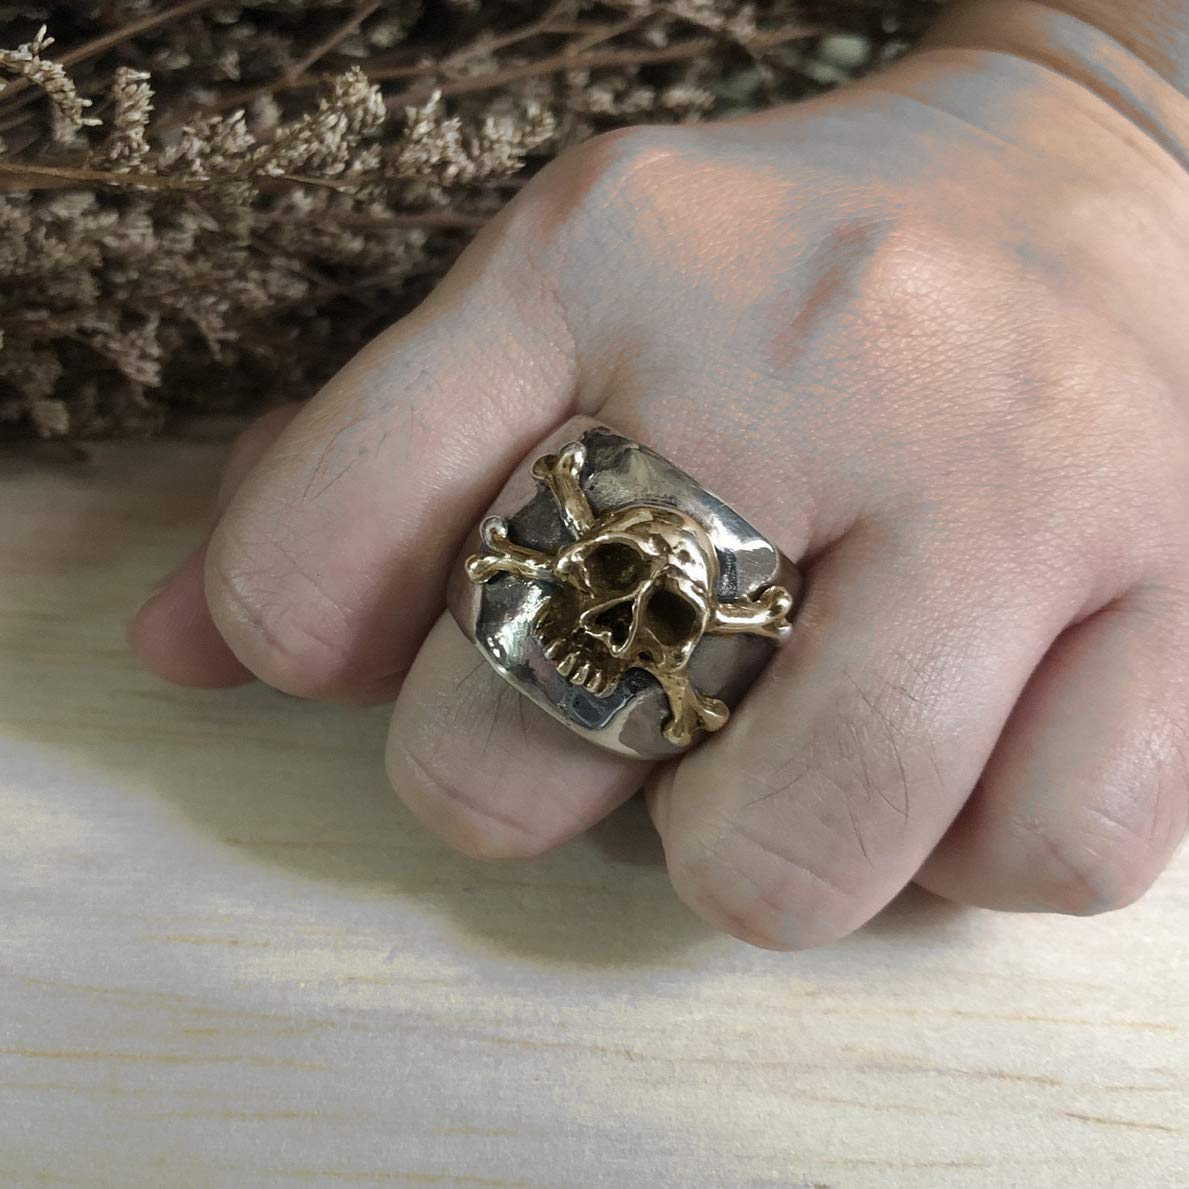 Handmade Mexican Sterling Silver Vintage Style Caribbean Pirate Skull and Crossbones Ring - DeluxeAdultCostumes.com